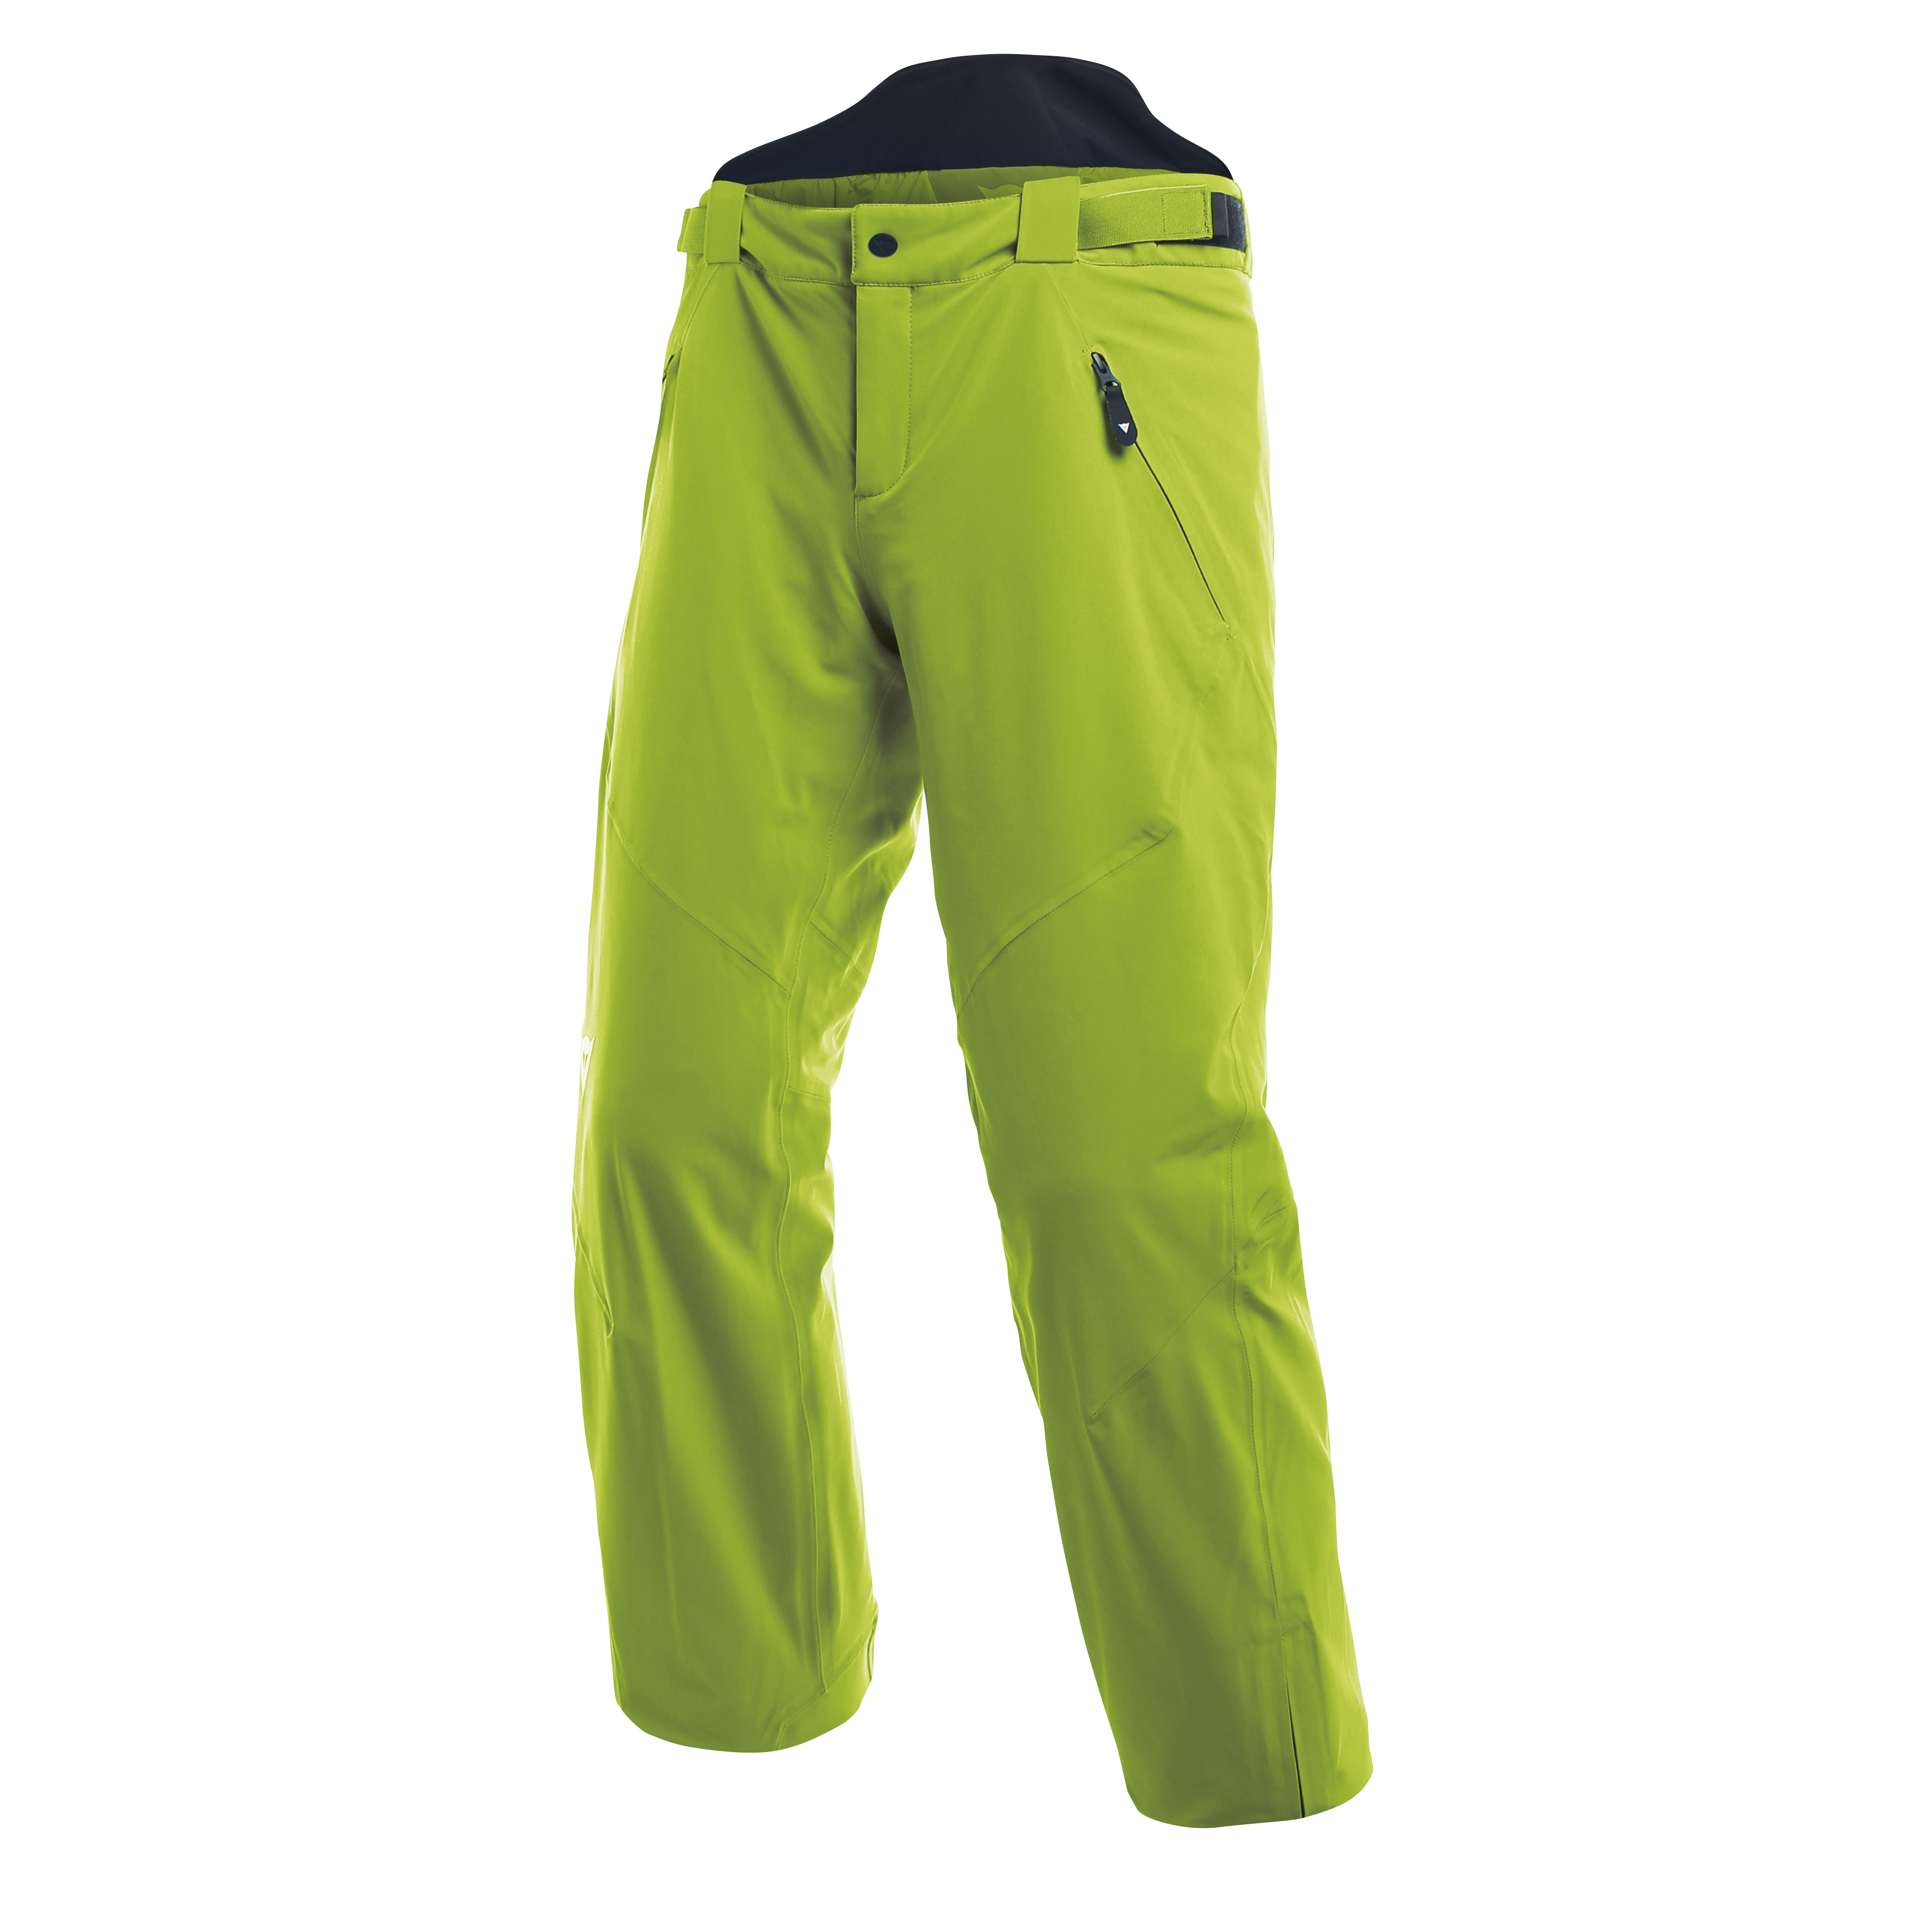 DAINESE PANT .HP2 P M1 Y74 LIME GREEN - 2018